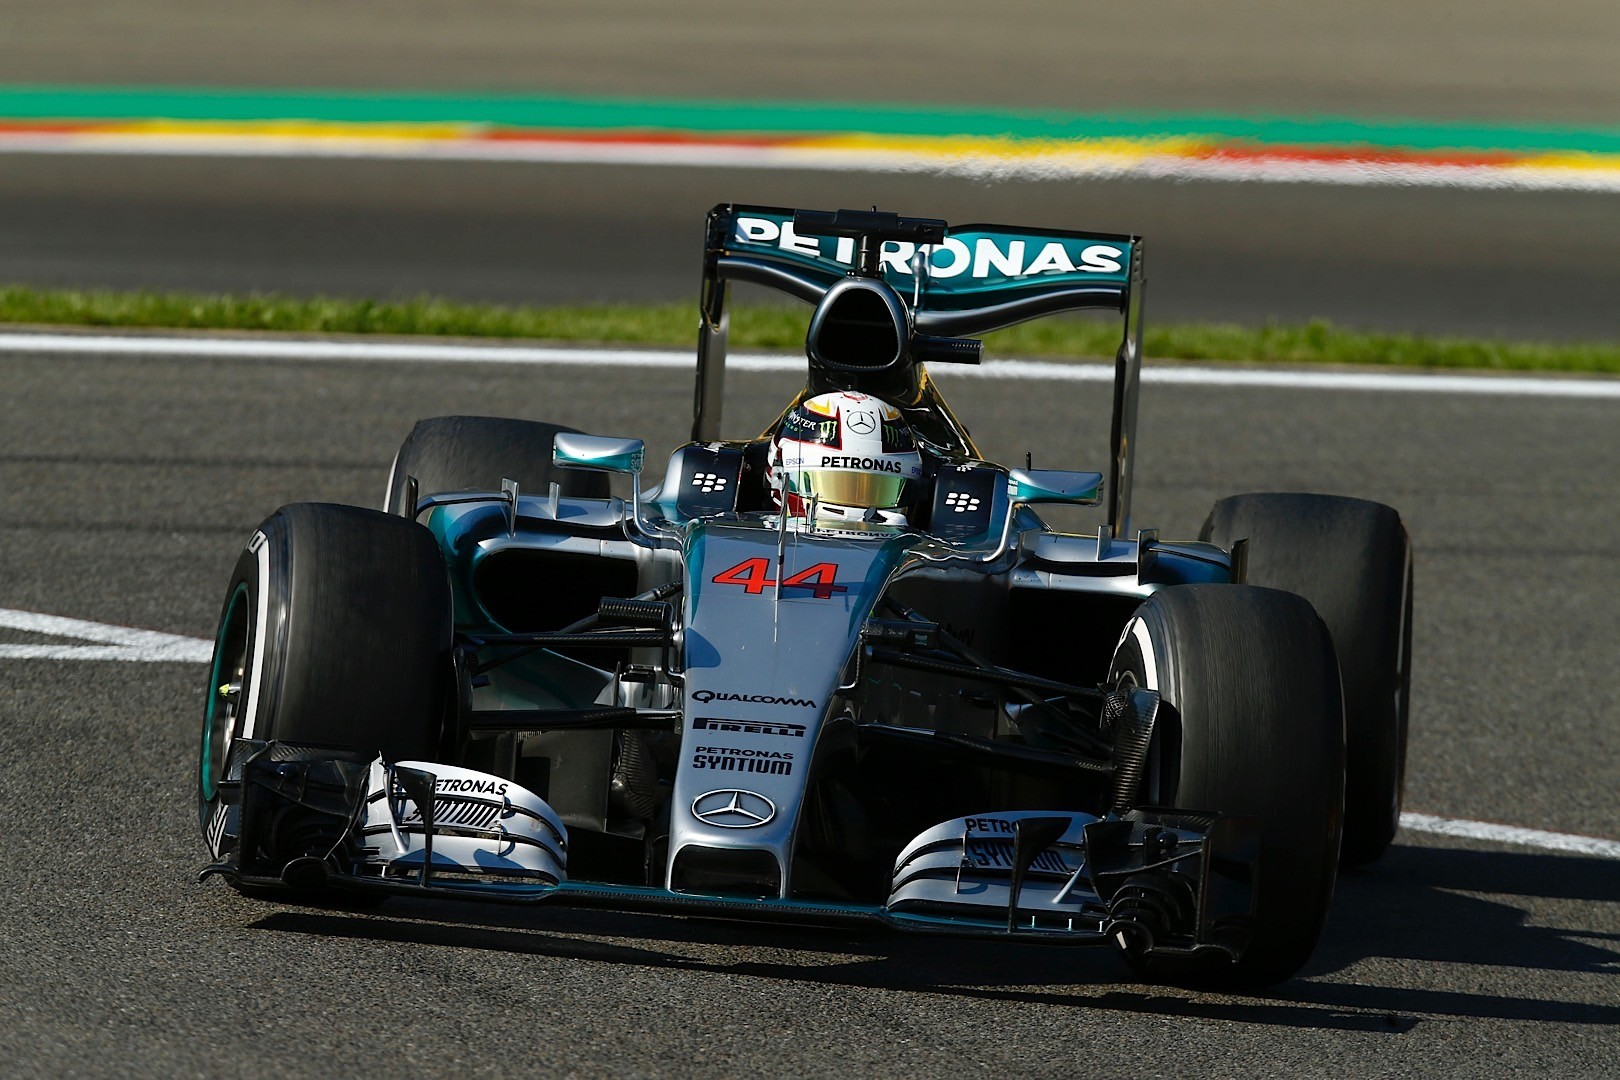 mercedes amg petronas goes light years in front of ferrari. Black Bedroom Furniture Sets. Home Design Ideas